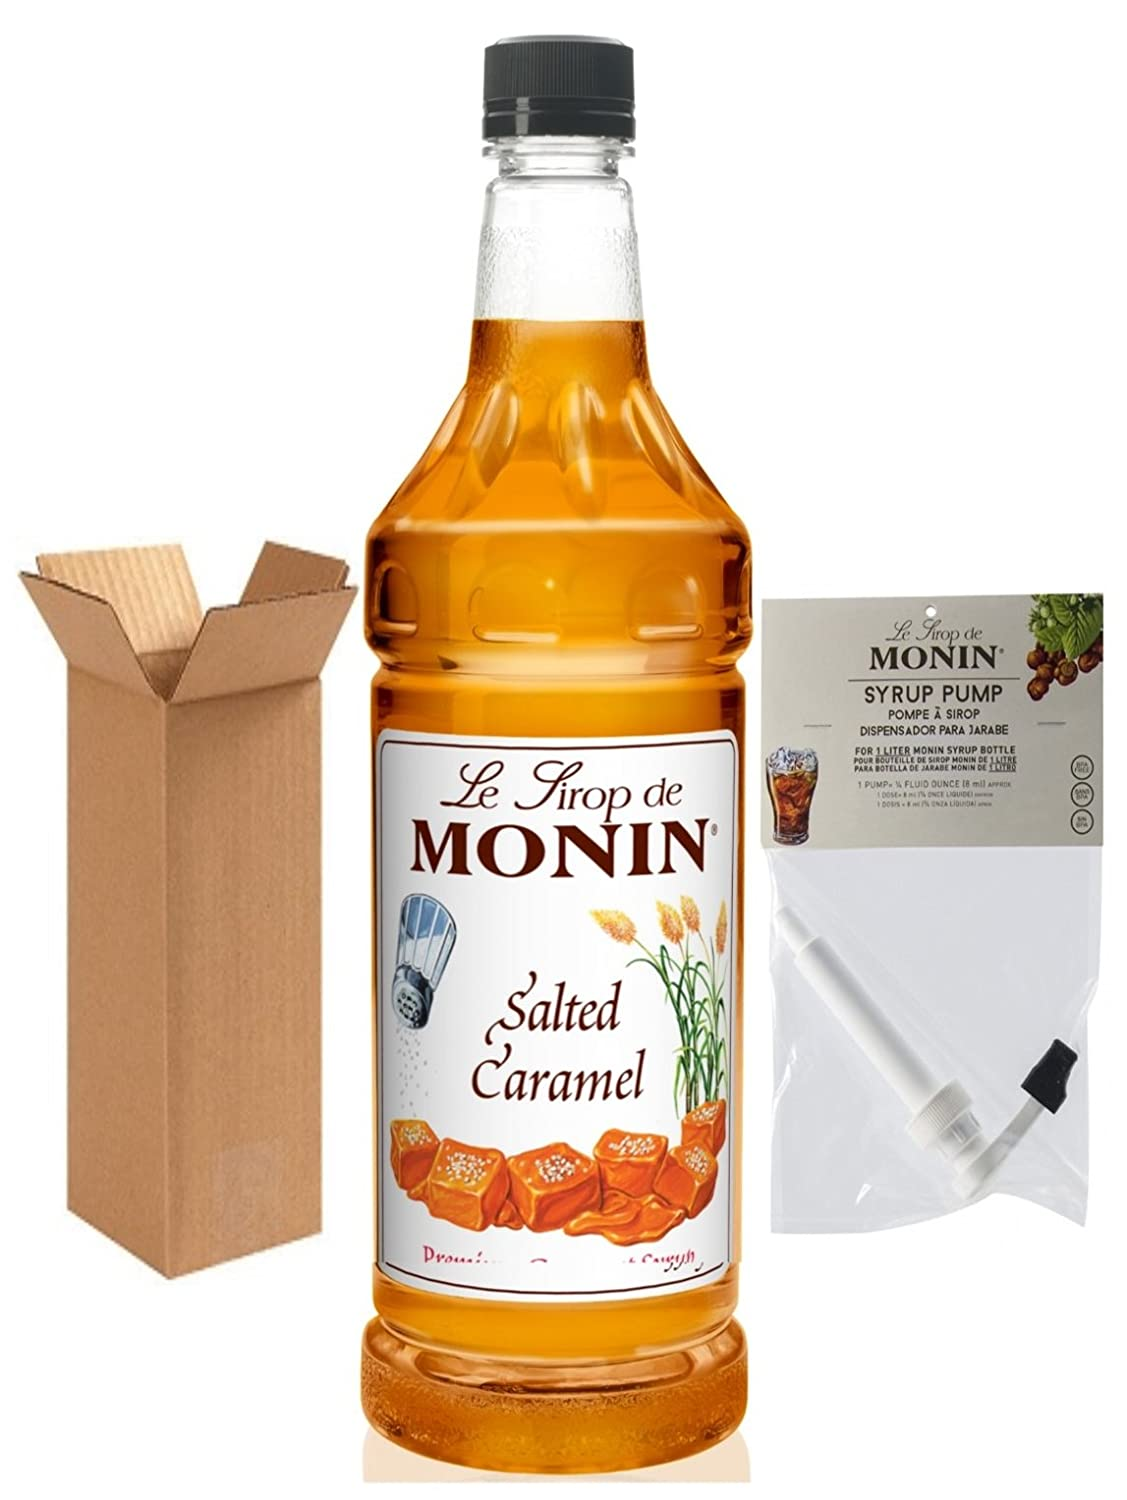 Amazon.com : Monin Salted Caramel Syrup, 33.8-Ounce Plastic Bottle (1 Liter) with Monin BPA Free Pump, Boxed. : Grocery & Gourmet Food